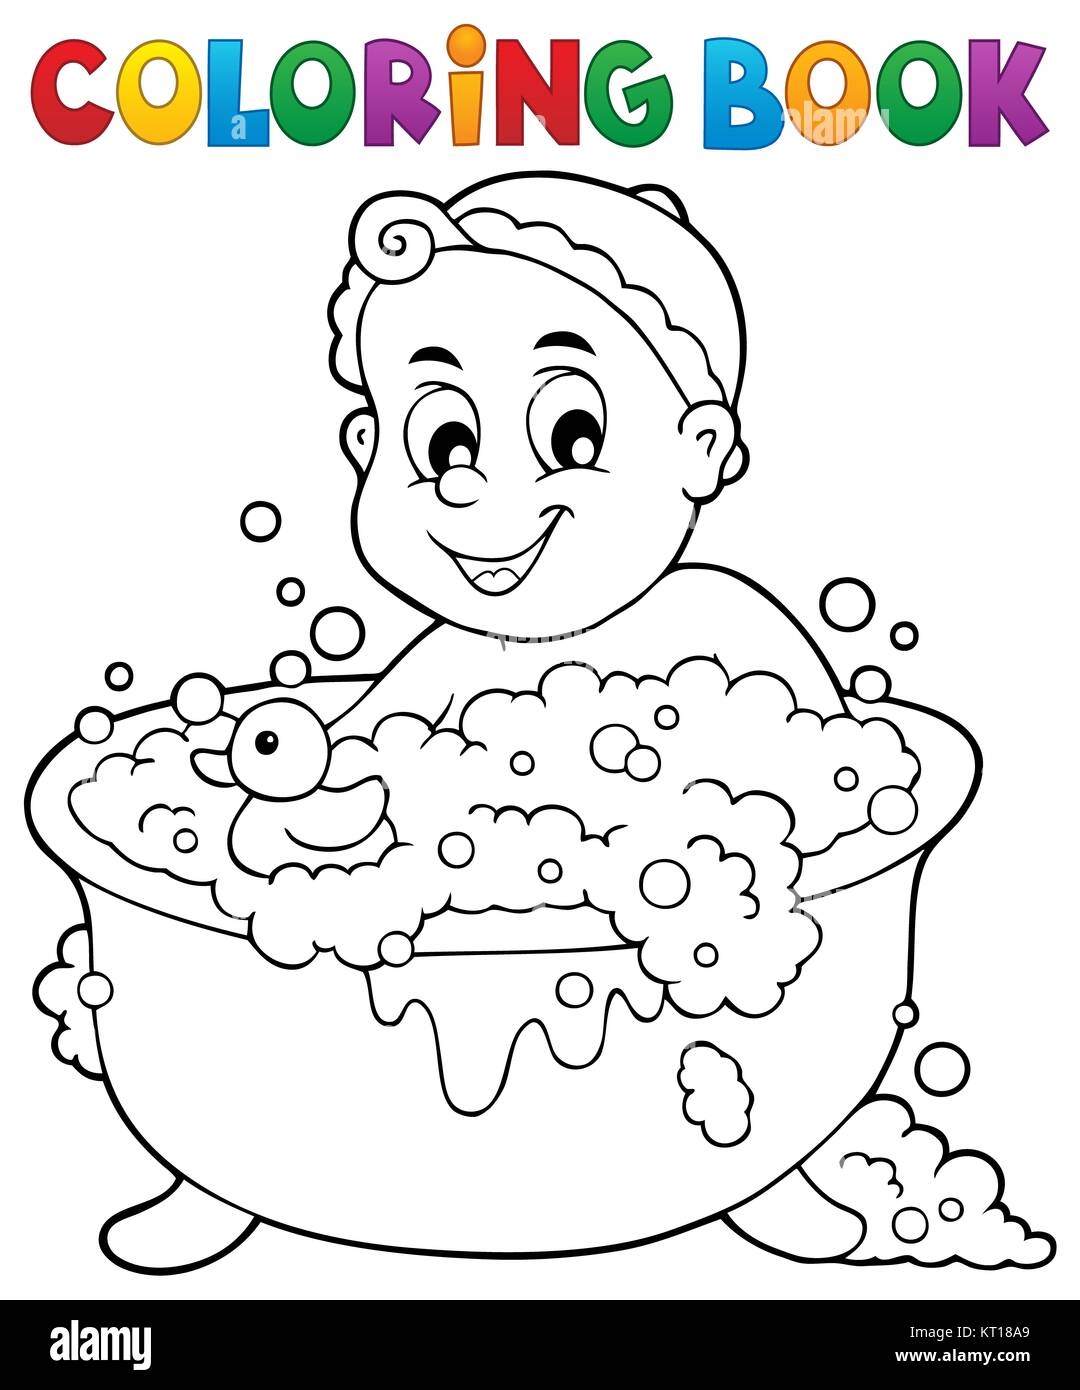 Child And Bath And Illustration Imágenes De Stock & Child And Bath ...